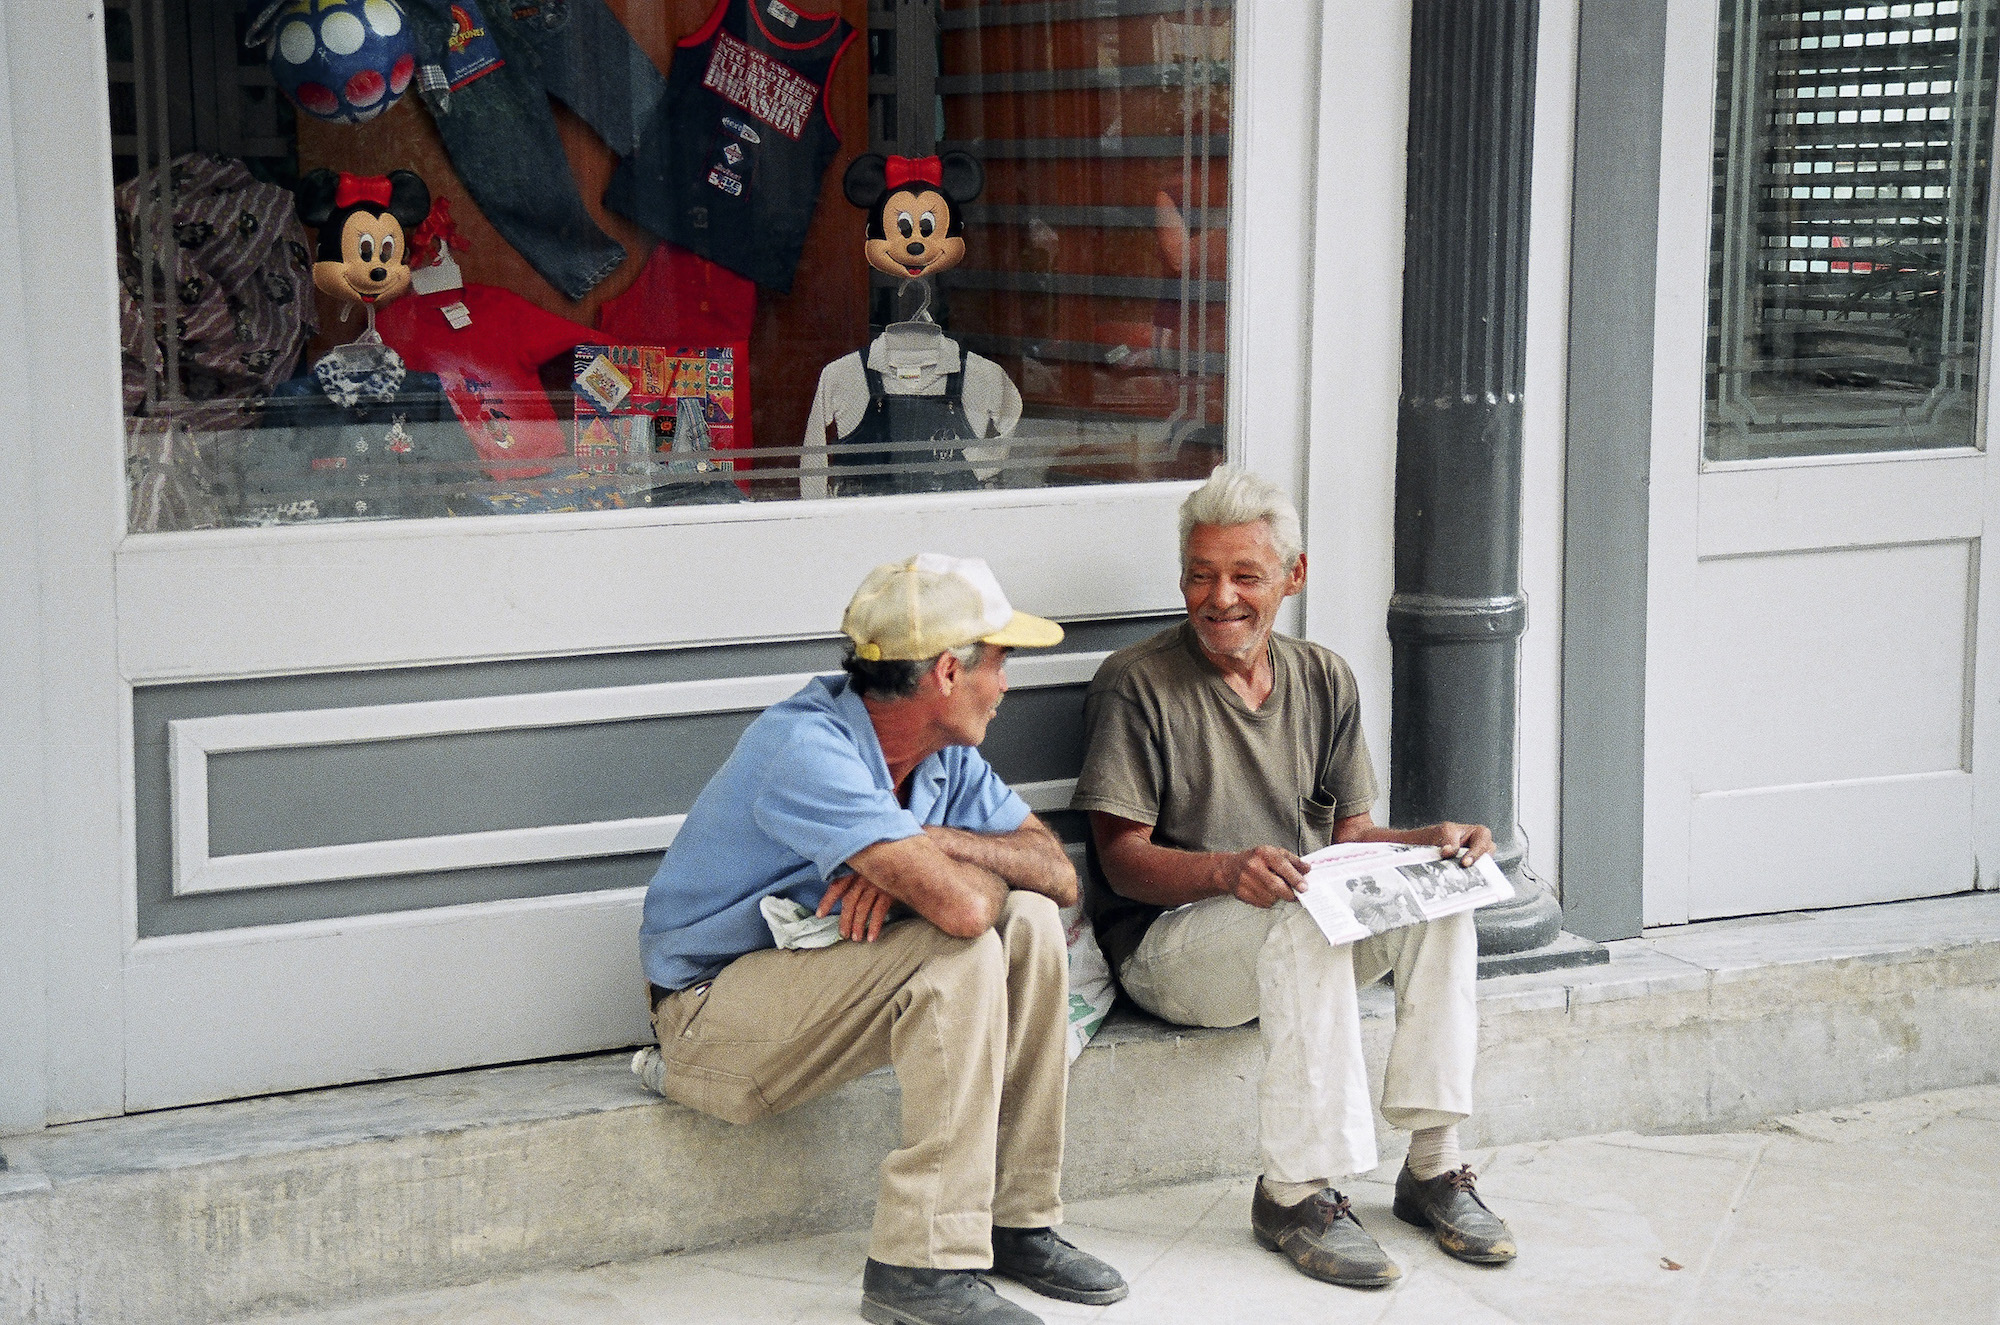 Local Cubans © Cyndie Burkhardt